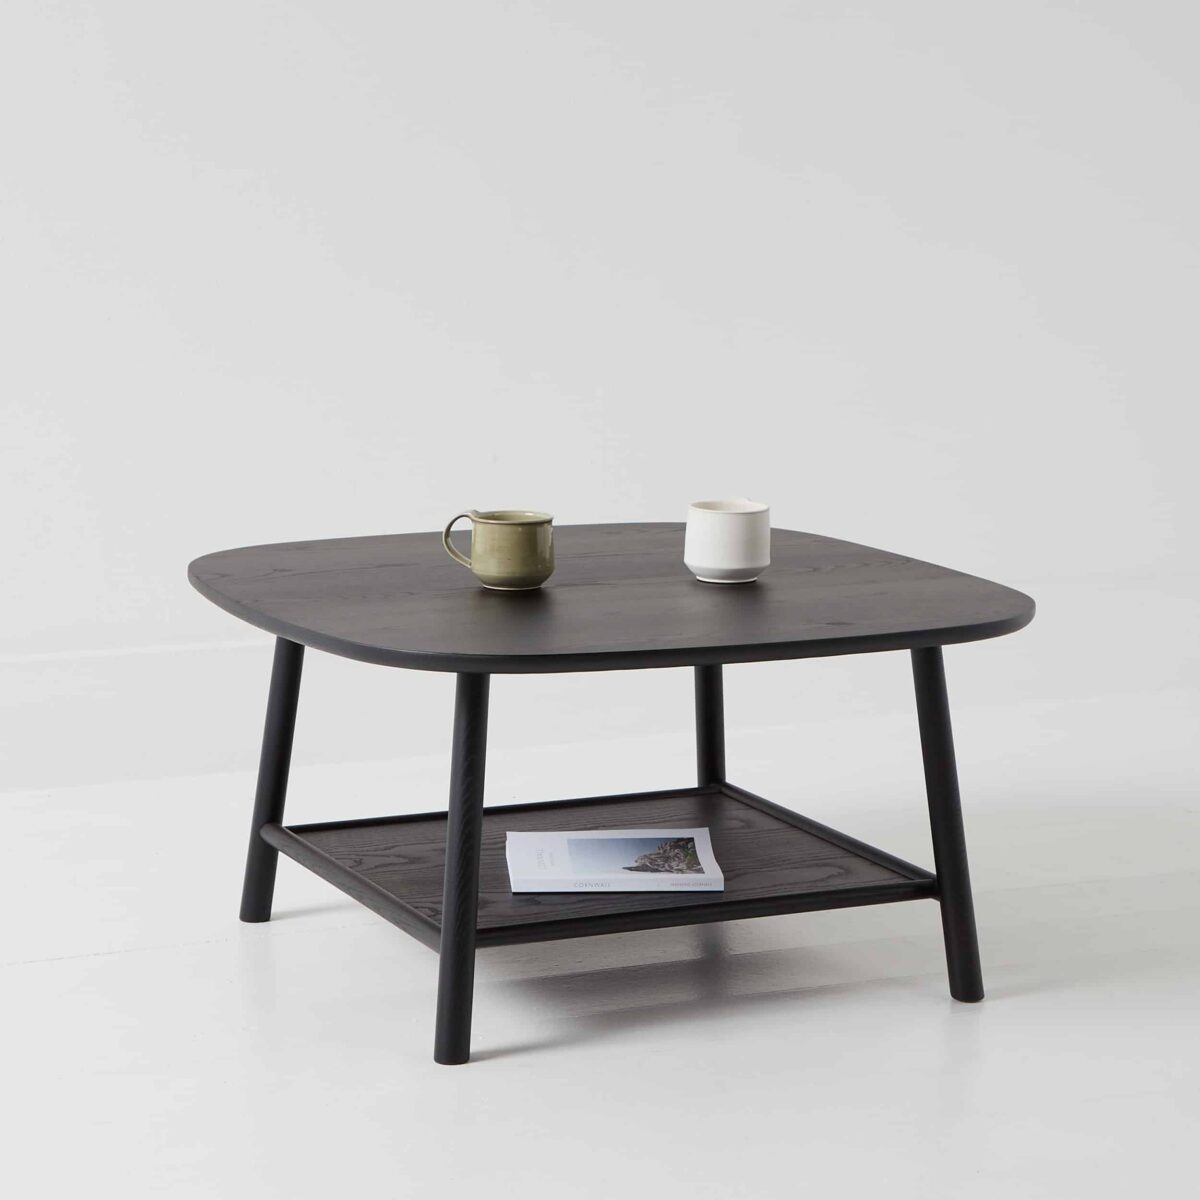 Hardy Coffee Table Black-181210-Another Country-webready-1140